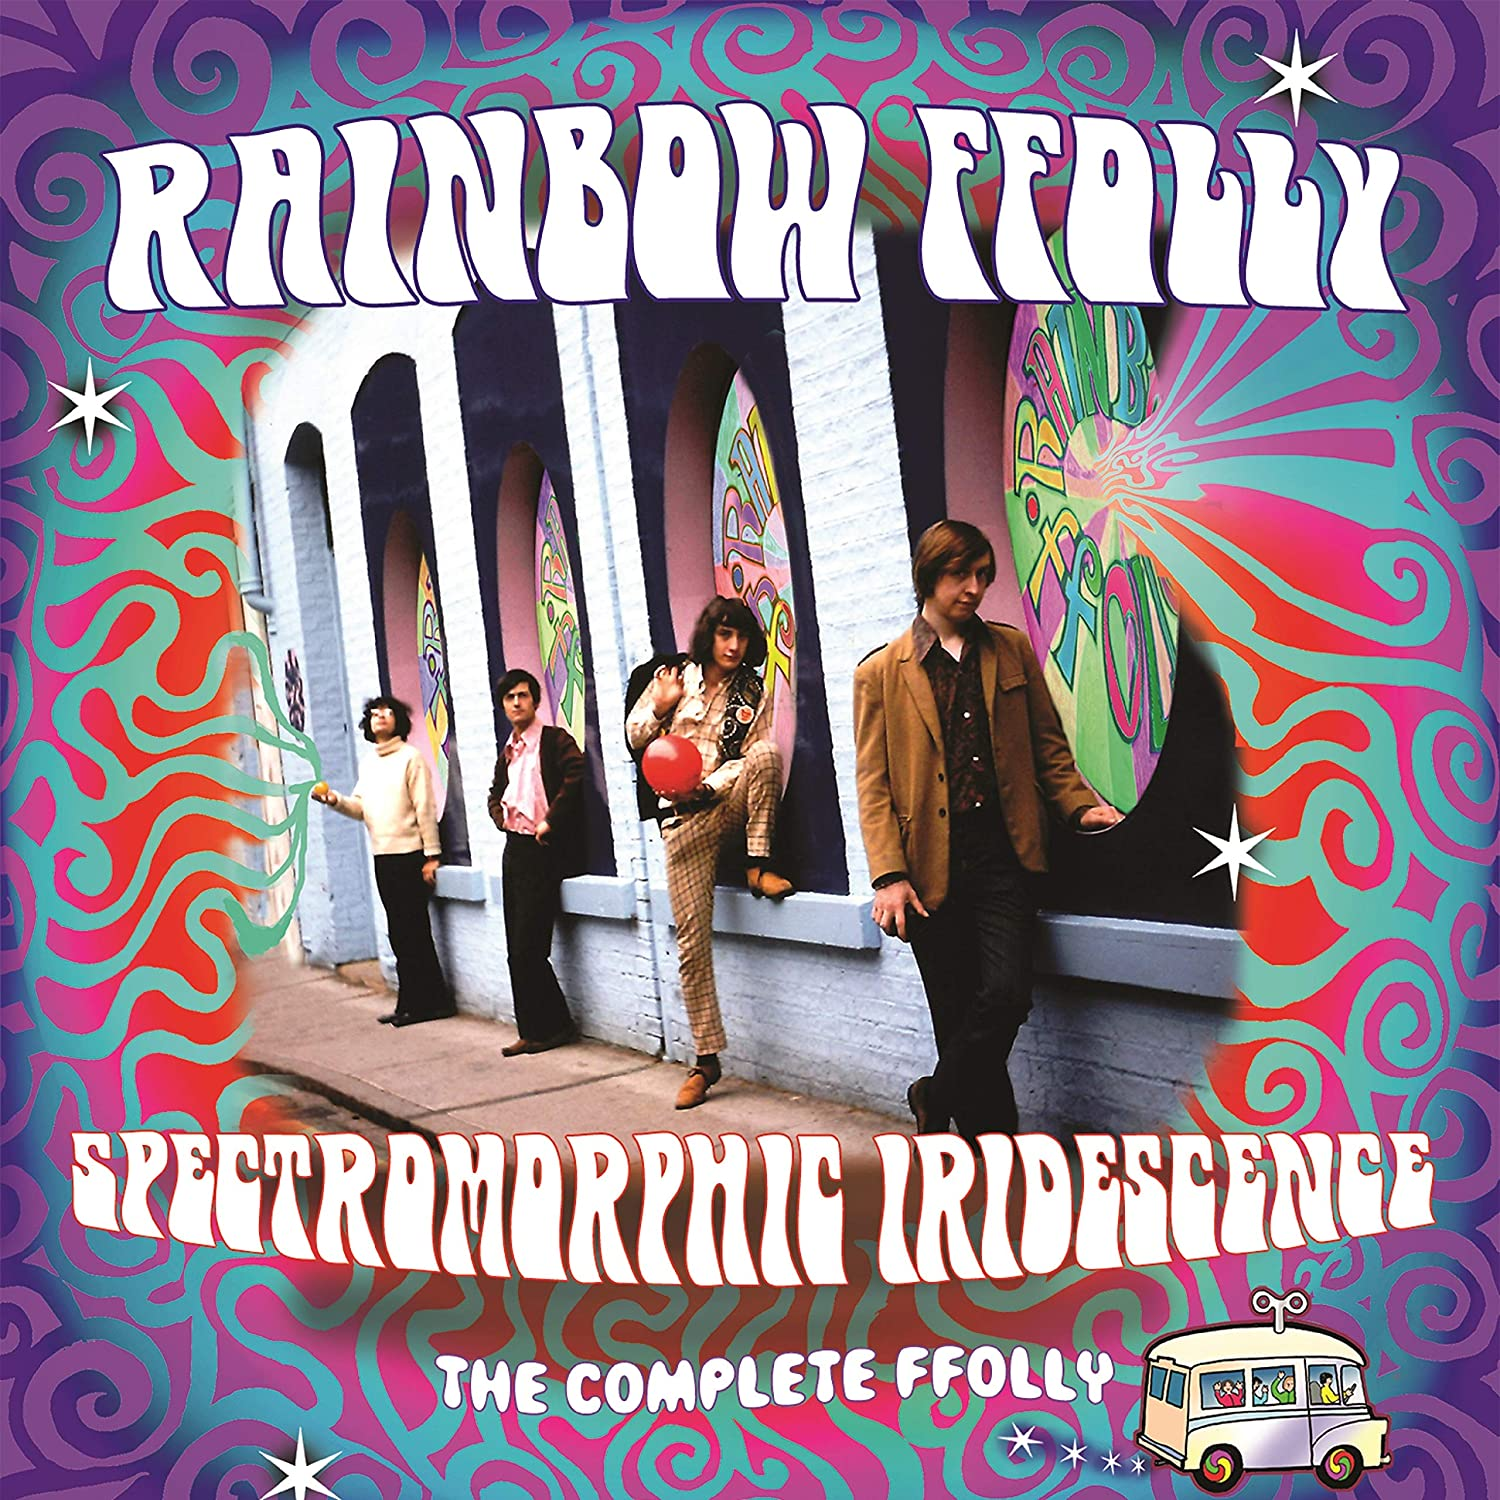 Spectromorphic Iridescence: Complete Ffolly